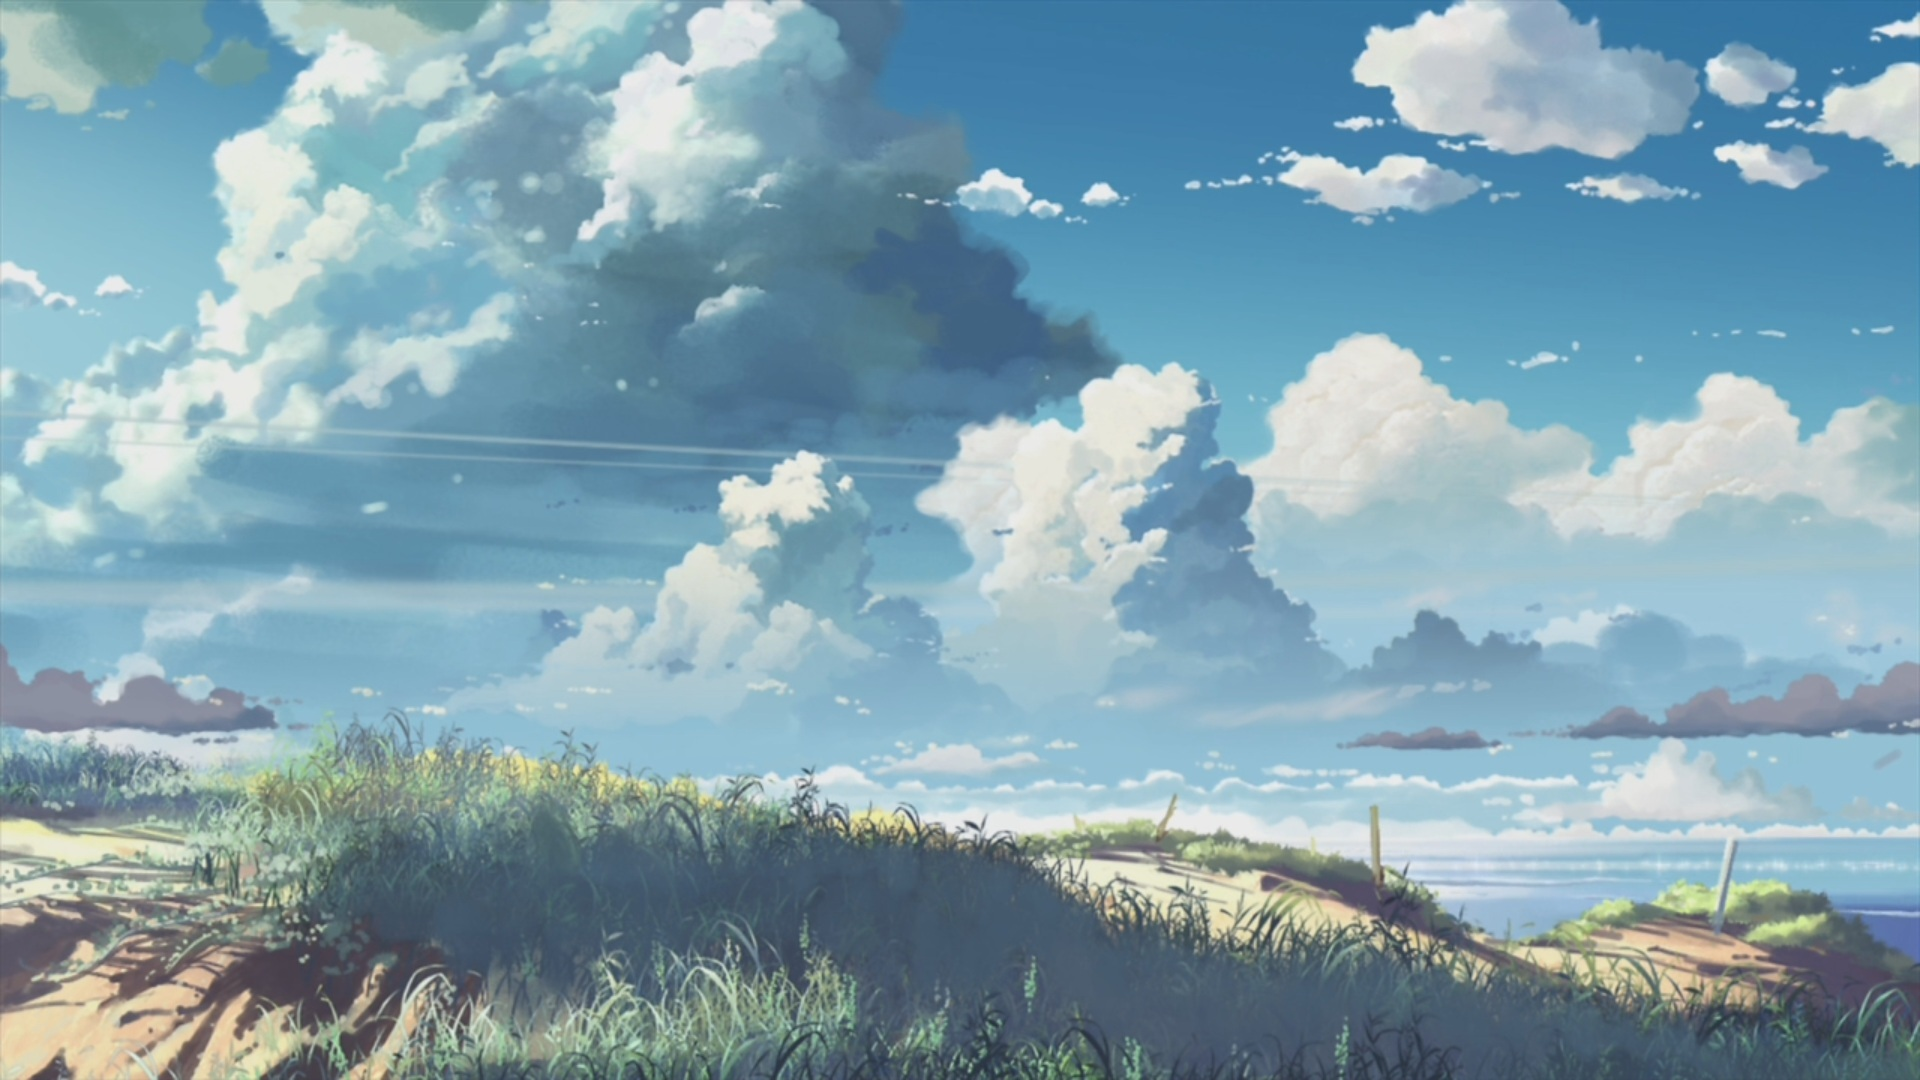 Anime Scenery Wallpapers